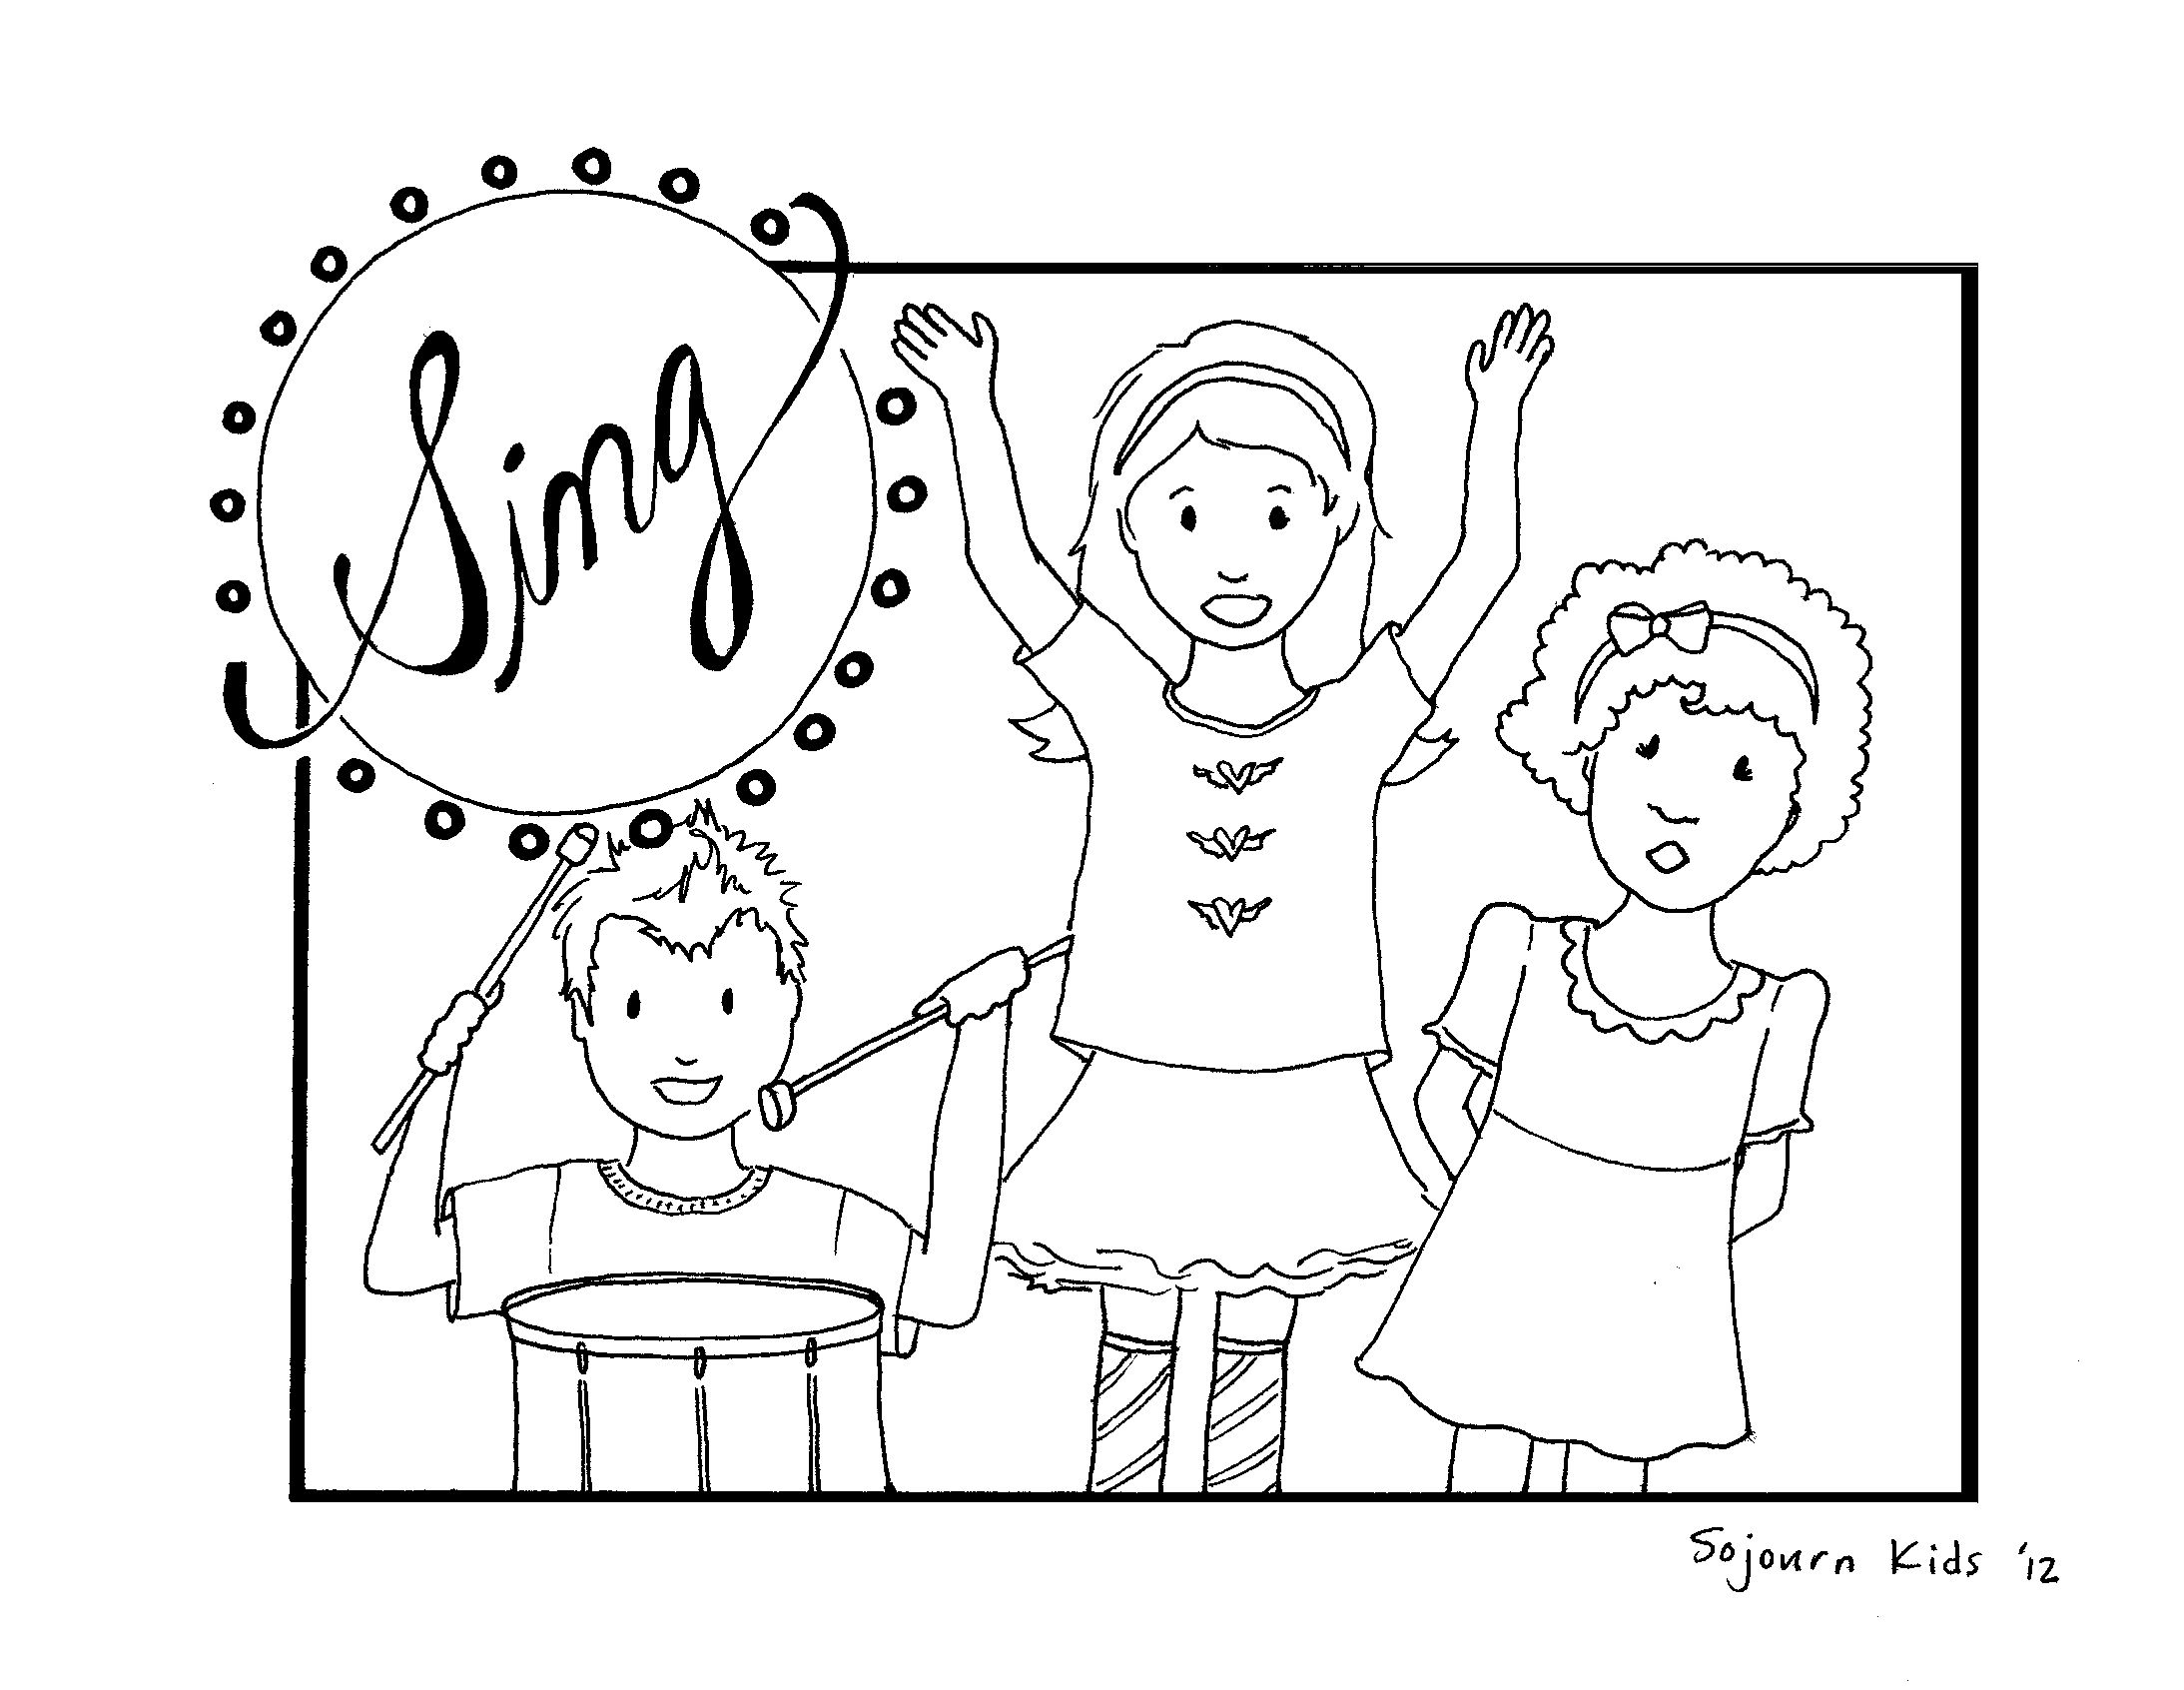 Free Coloring Pages Children Singing In Church Sunday School Coloring Pages Free Coloring Pages Coloring Pages For Boys